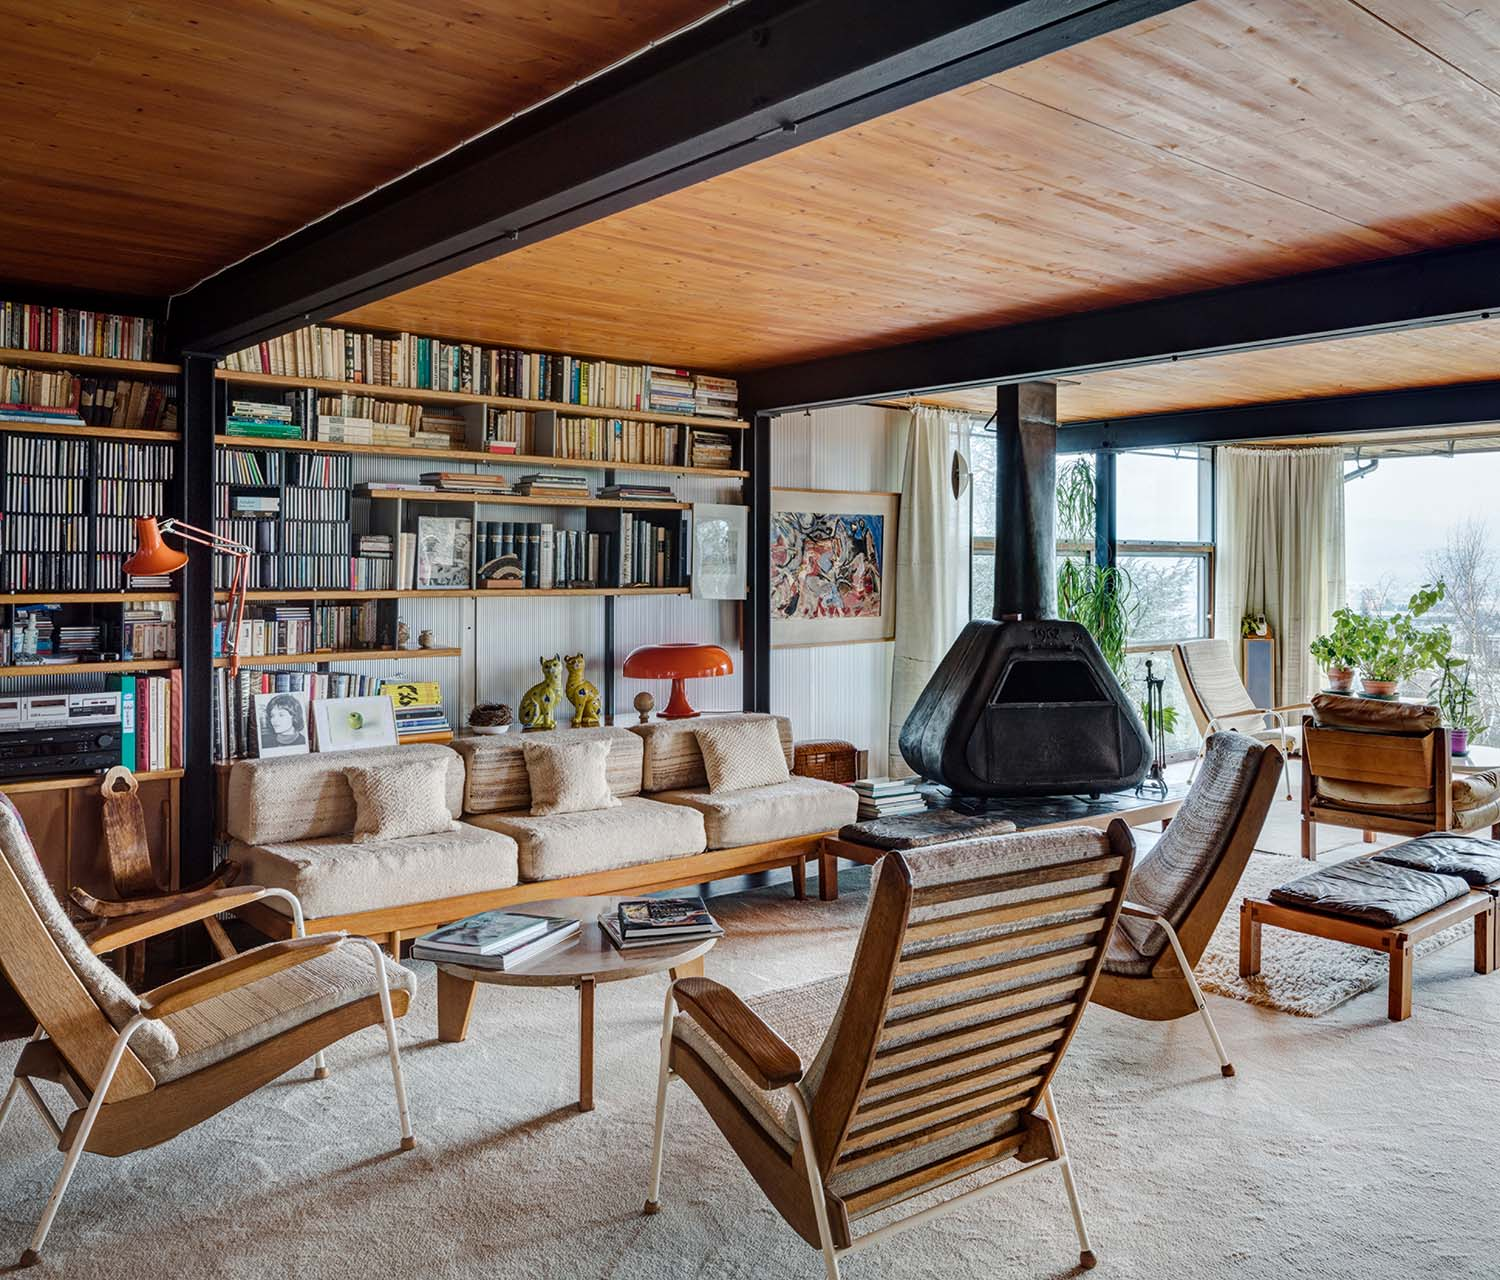 The Atlas Of Mid Century Modern Houses Charts The Movement S Icons